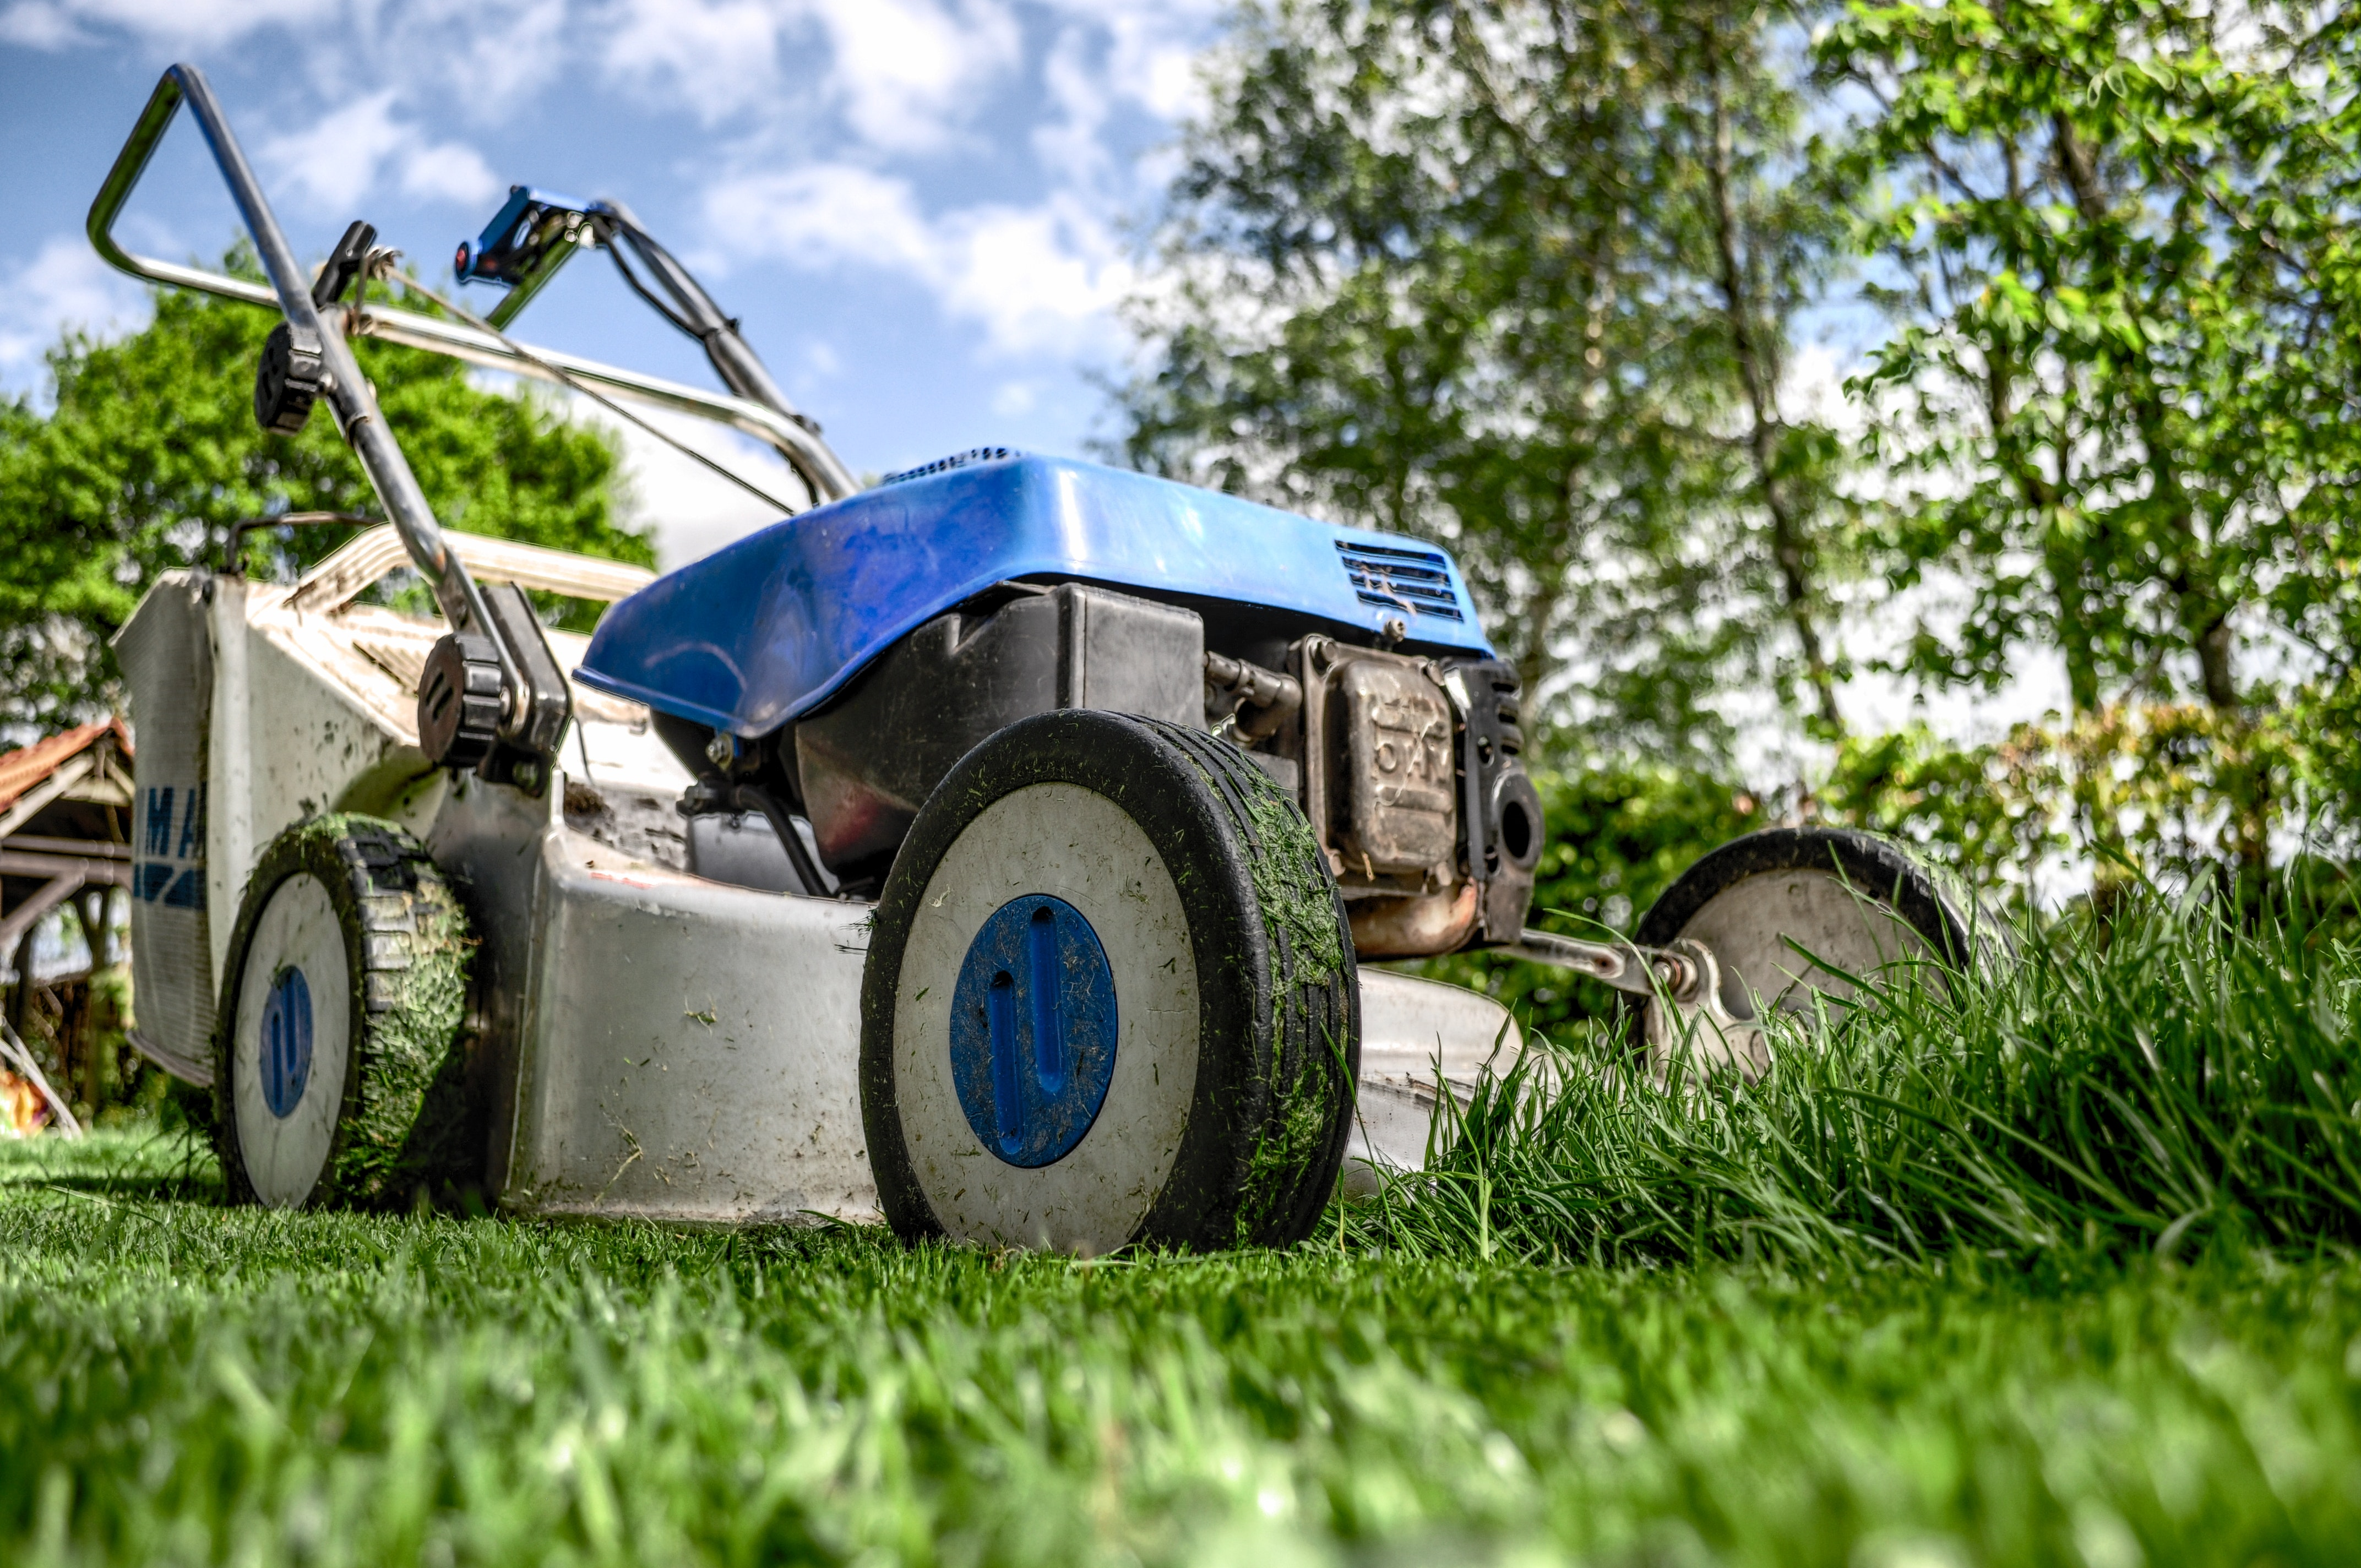 A Woman Tries to Stop an Out-of-Control Lawn Mower . . . with a Stick